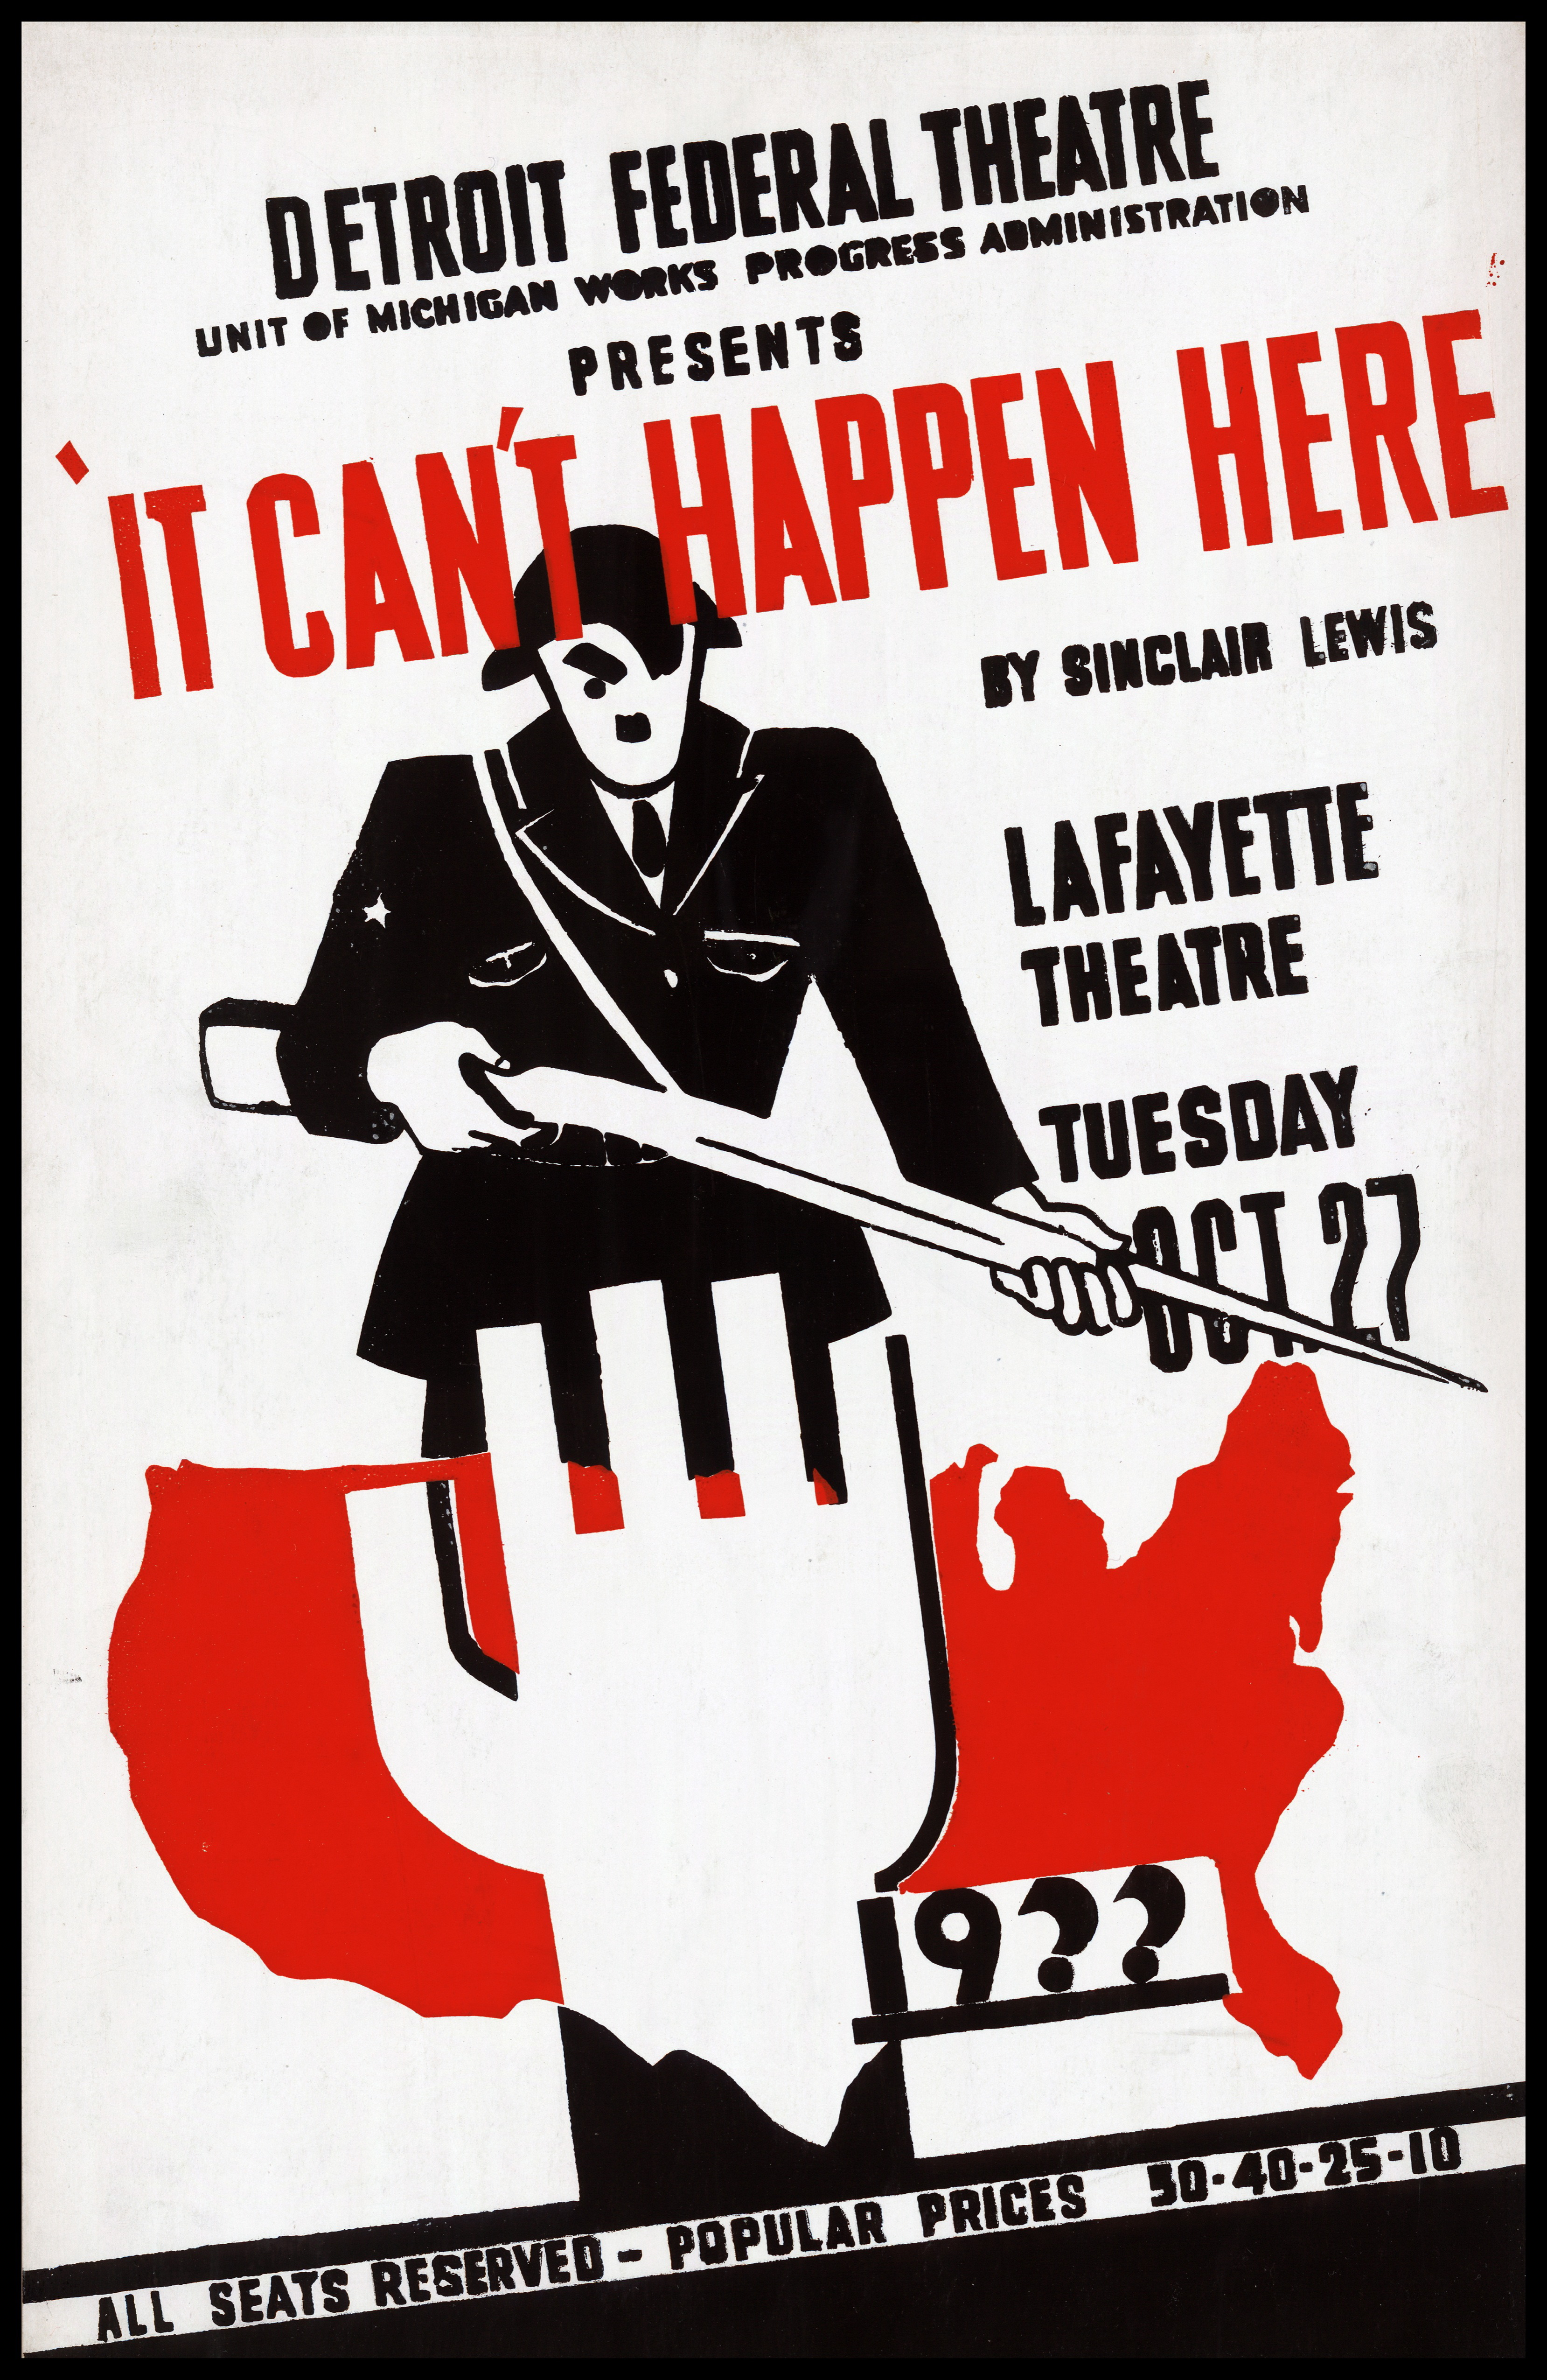 Detroit Federal Theatre Unit of Michigan Works Progress Administration presents It Can't Happen Here by Sinclair Lewis.